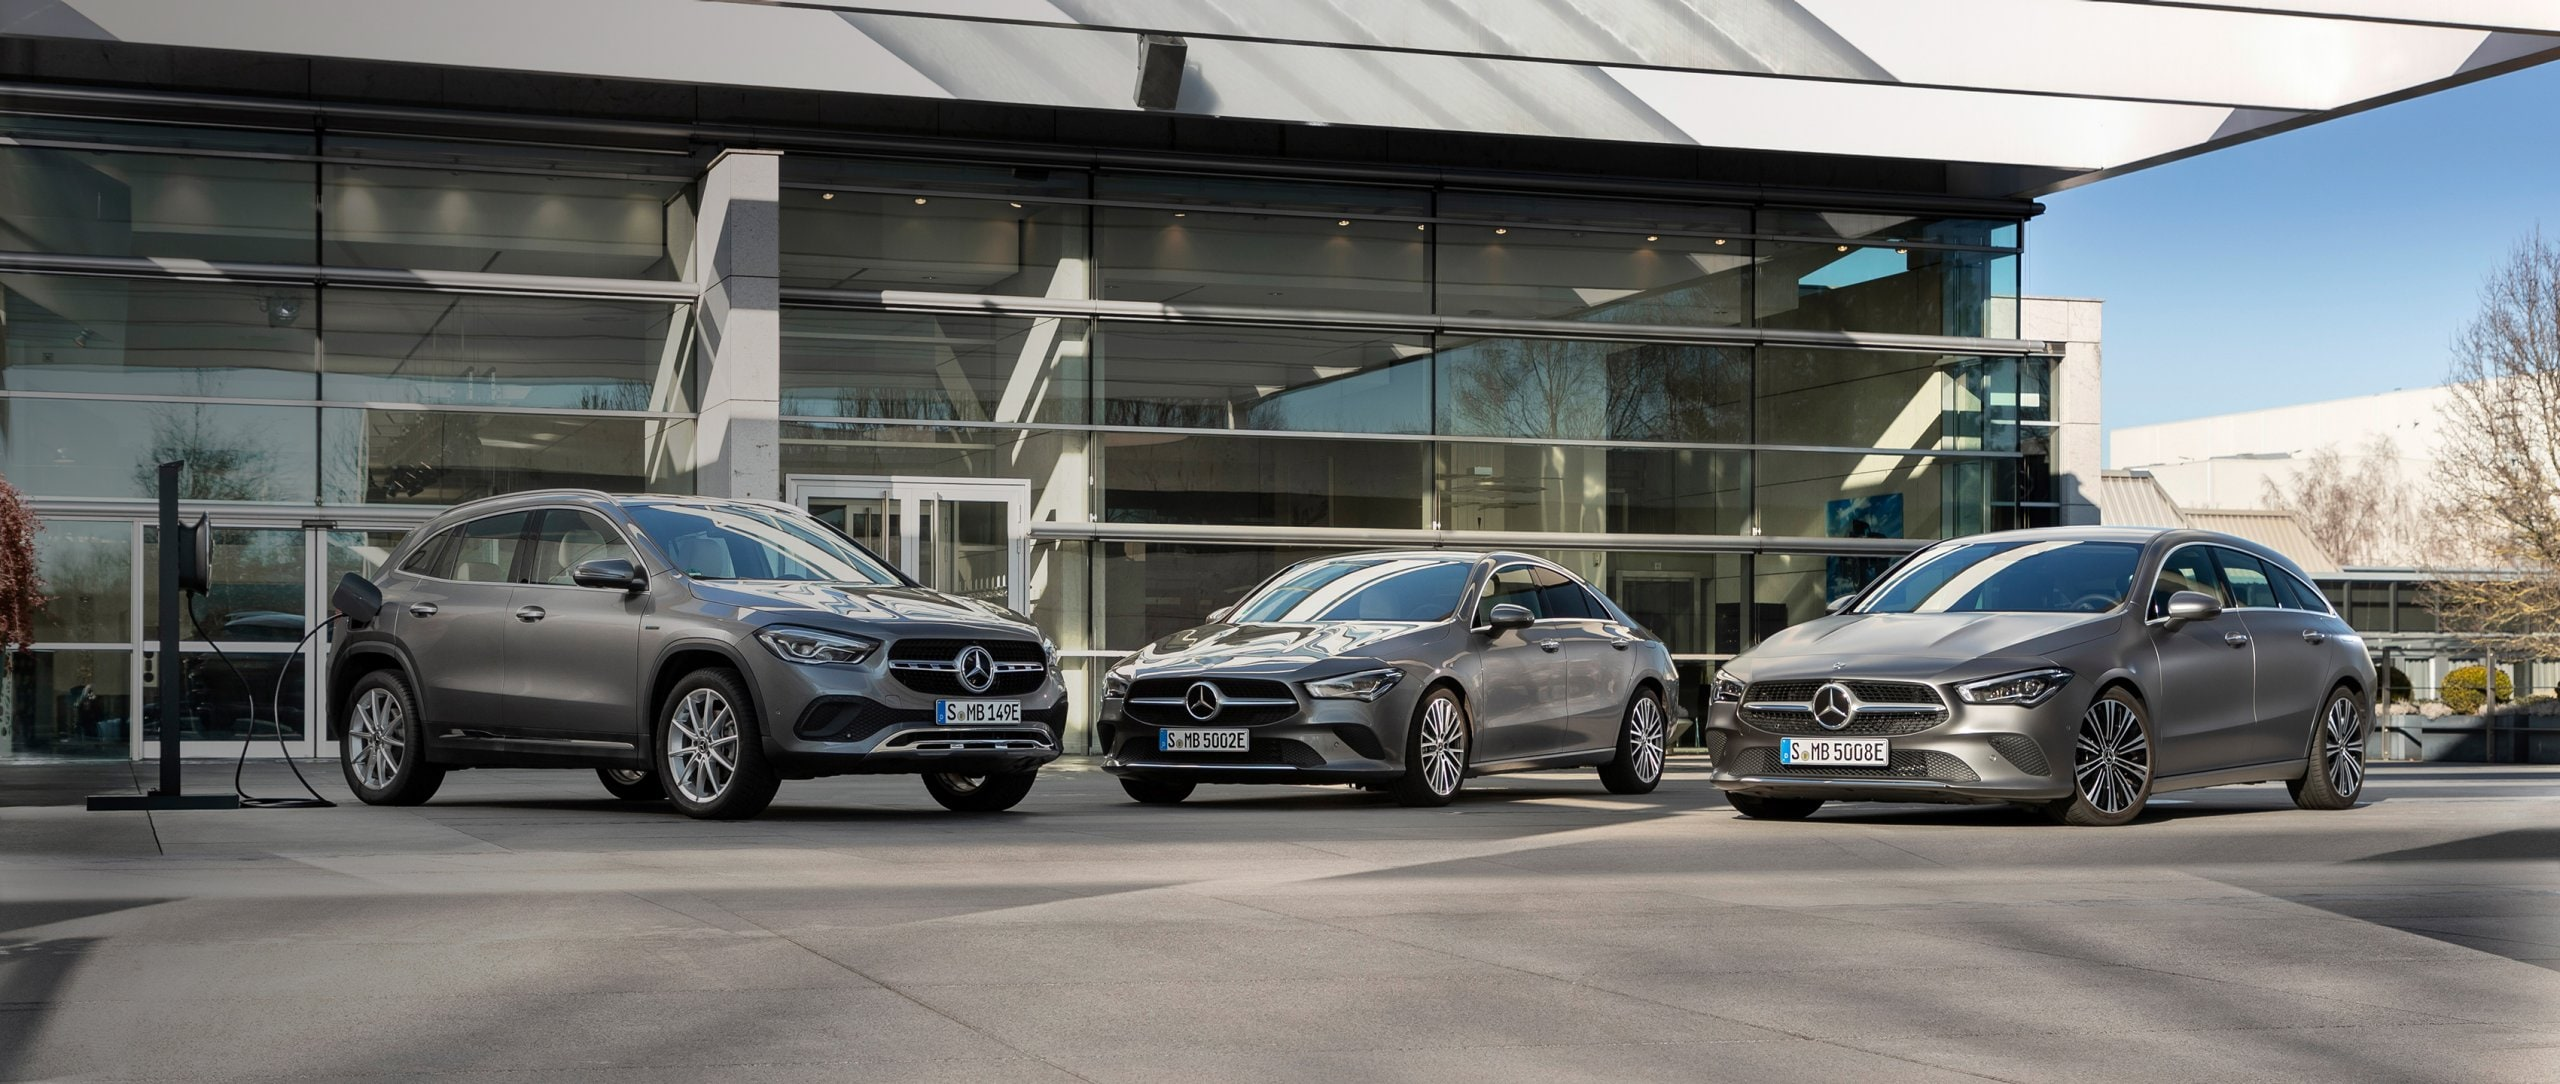 The Mercedes-Benz CLA Coupé, Mercedes-Benz CLA Shooting Brake and Mercedes-Benz GLA stand in front of a building.